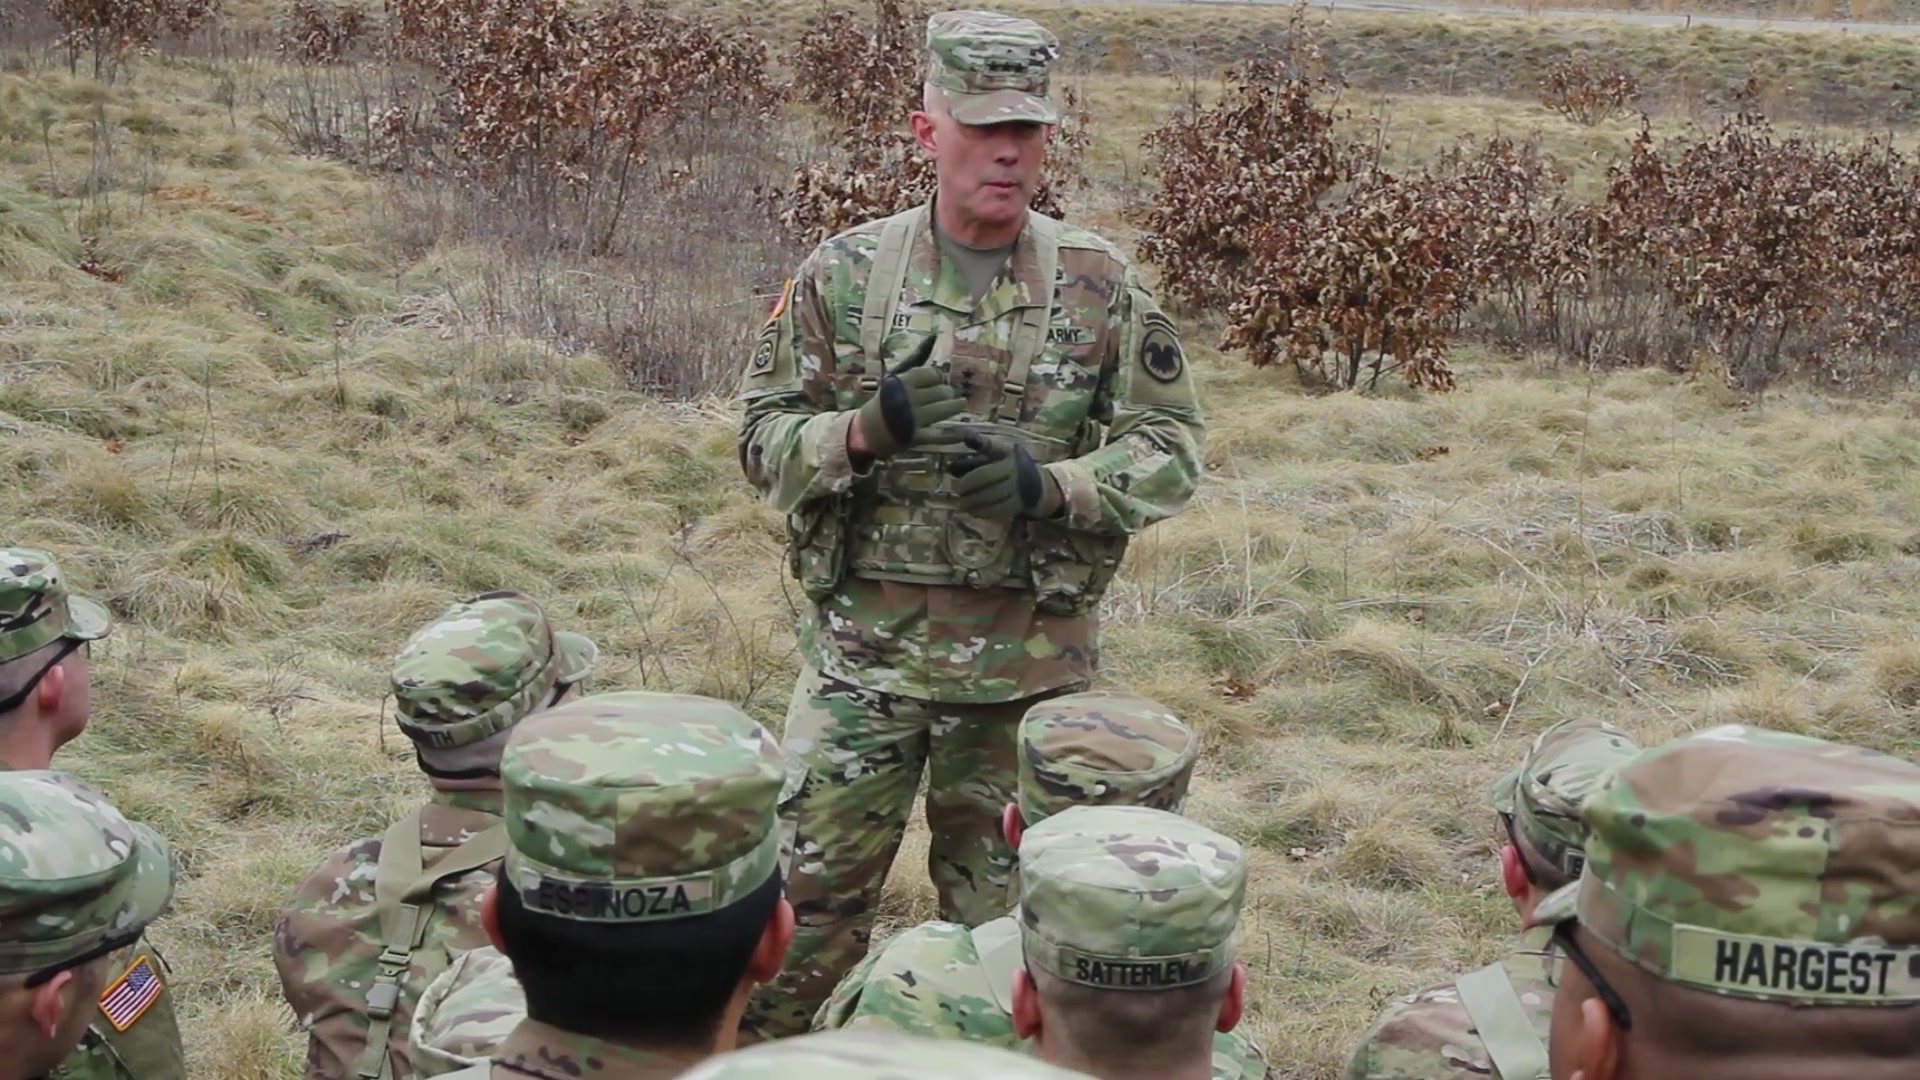 LTG Luckey talks about the Road to Awesome and his priorities for the Army Reserve with Soldiers at a live fire range at Fort McCoy, Wisconsin.